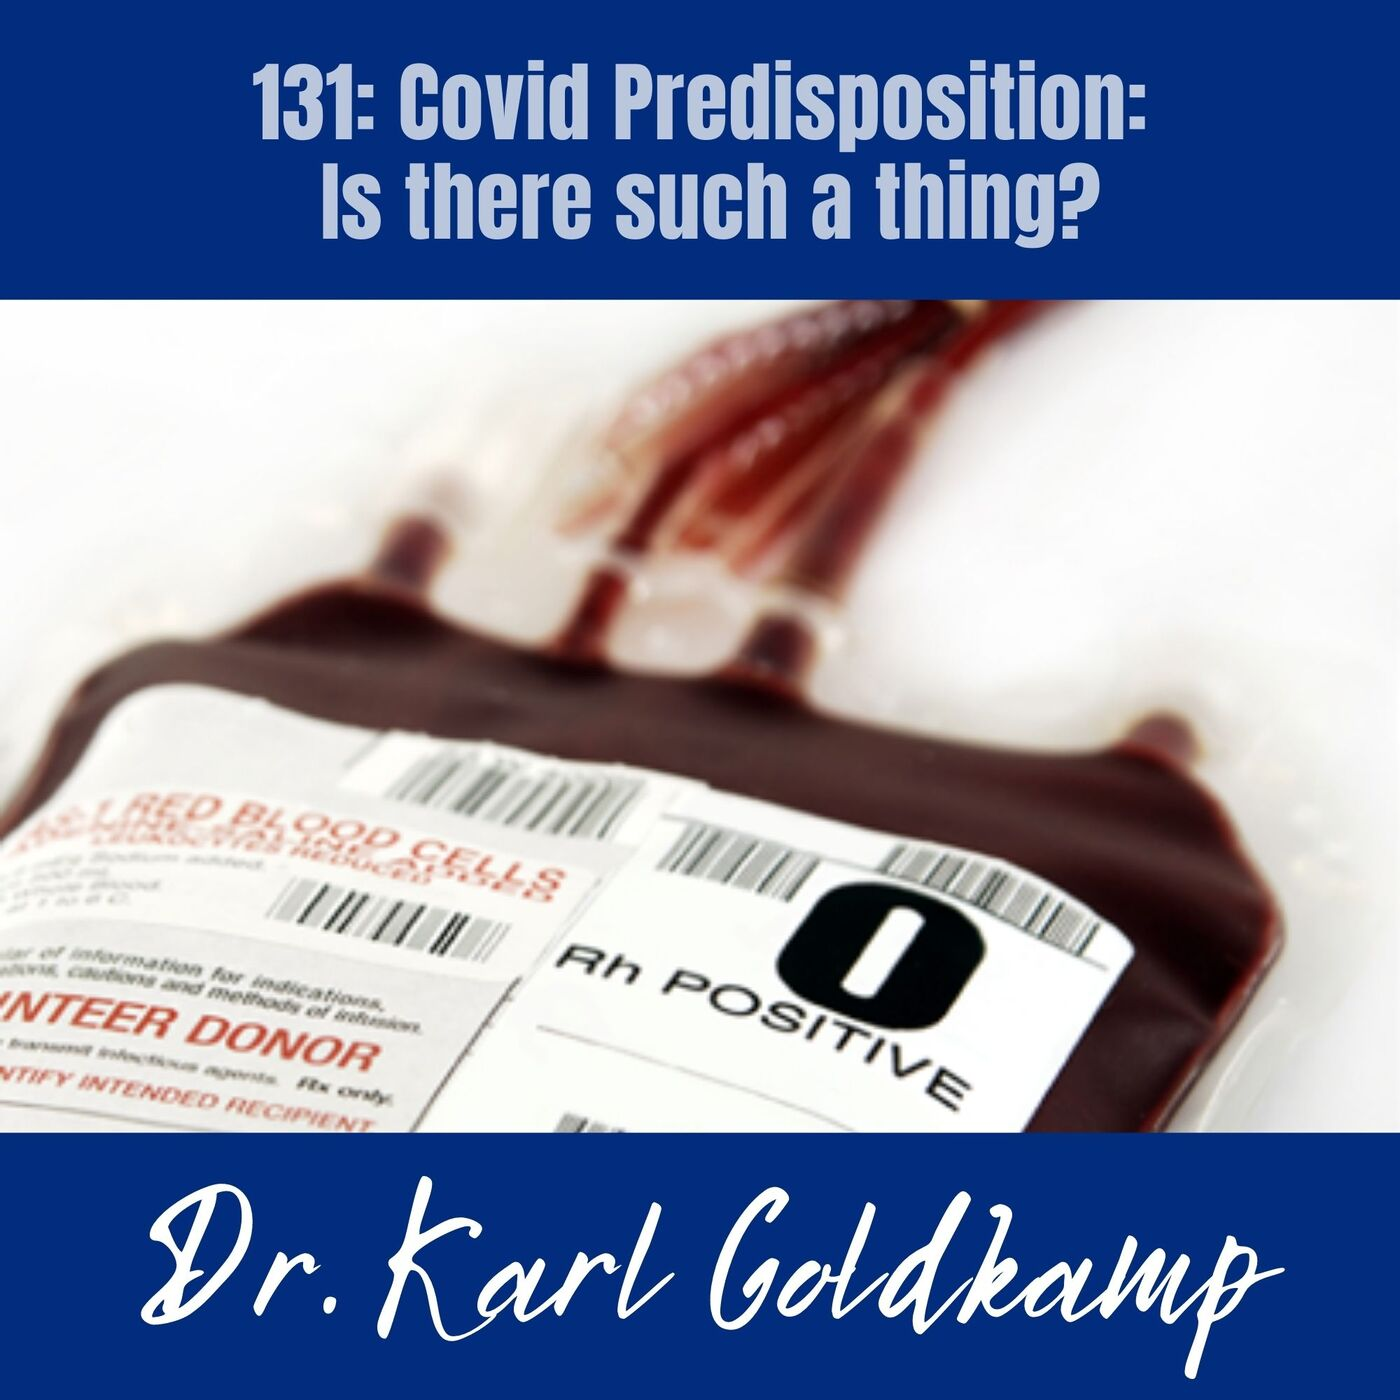 131: Covid Predisposition: Is There Such a Thing?